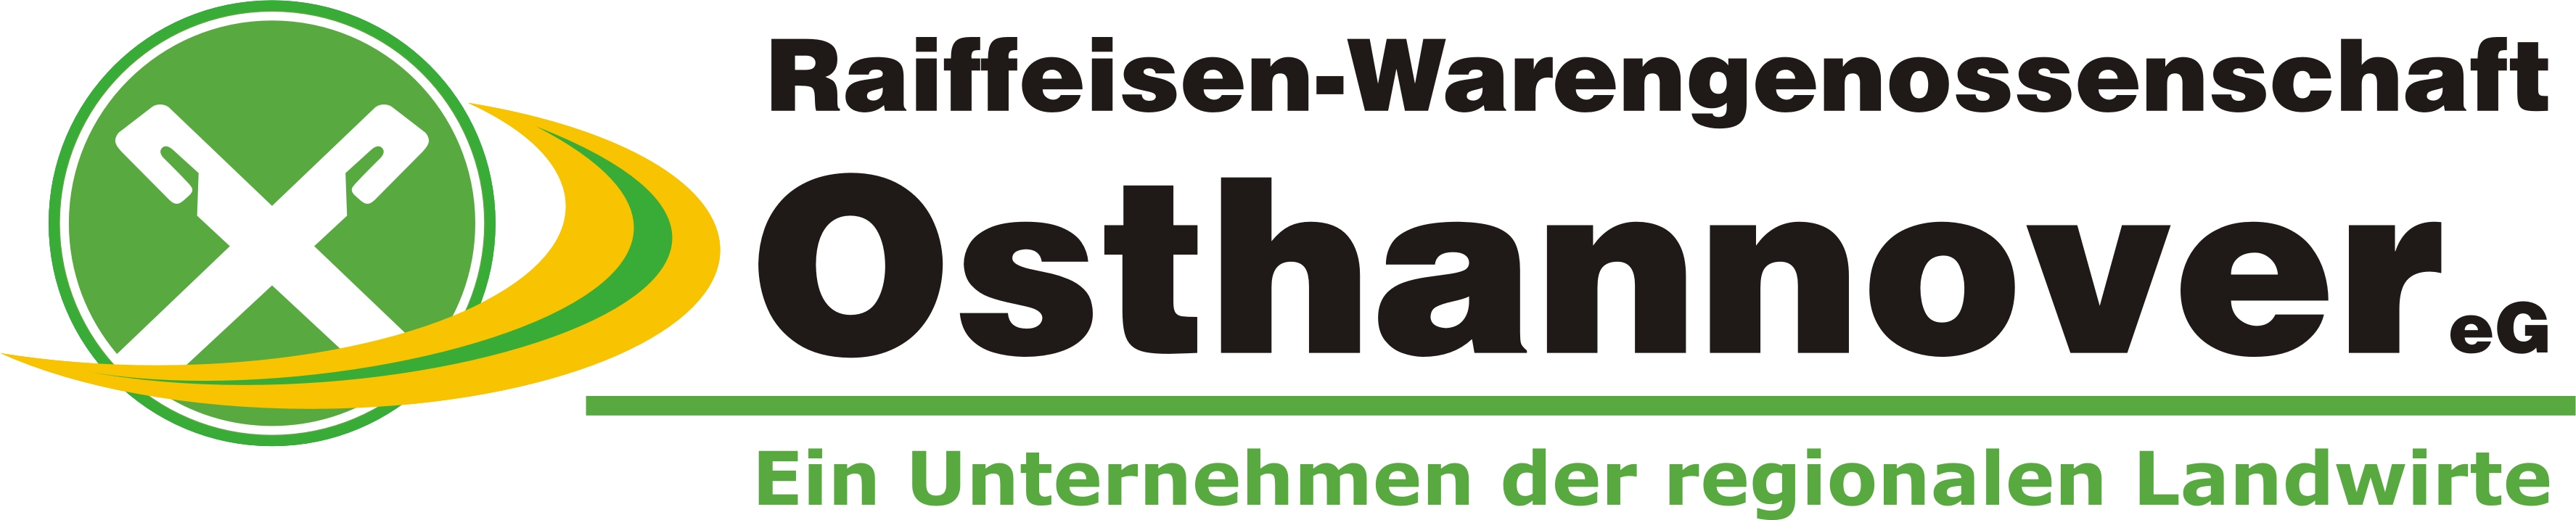 www.rwg-osthannover.de